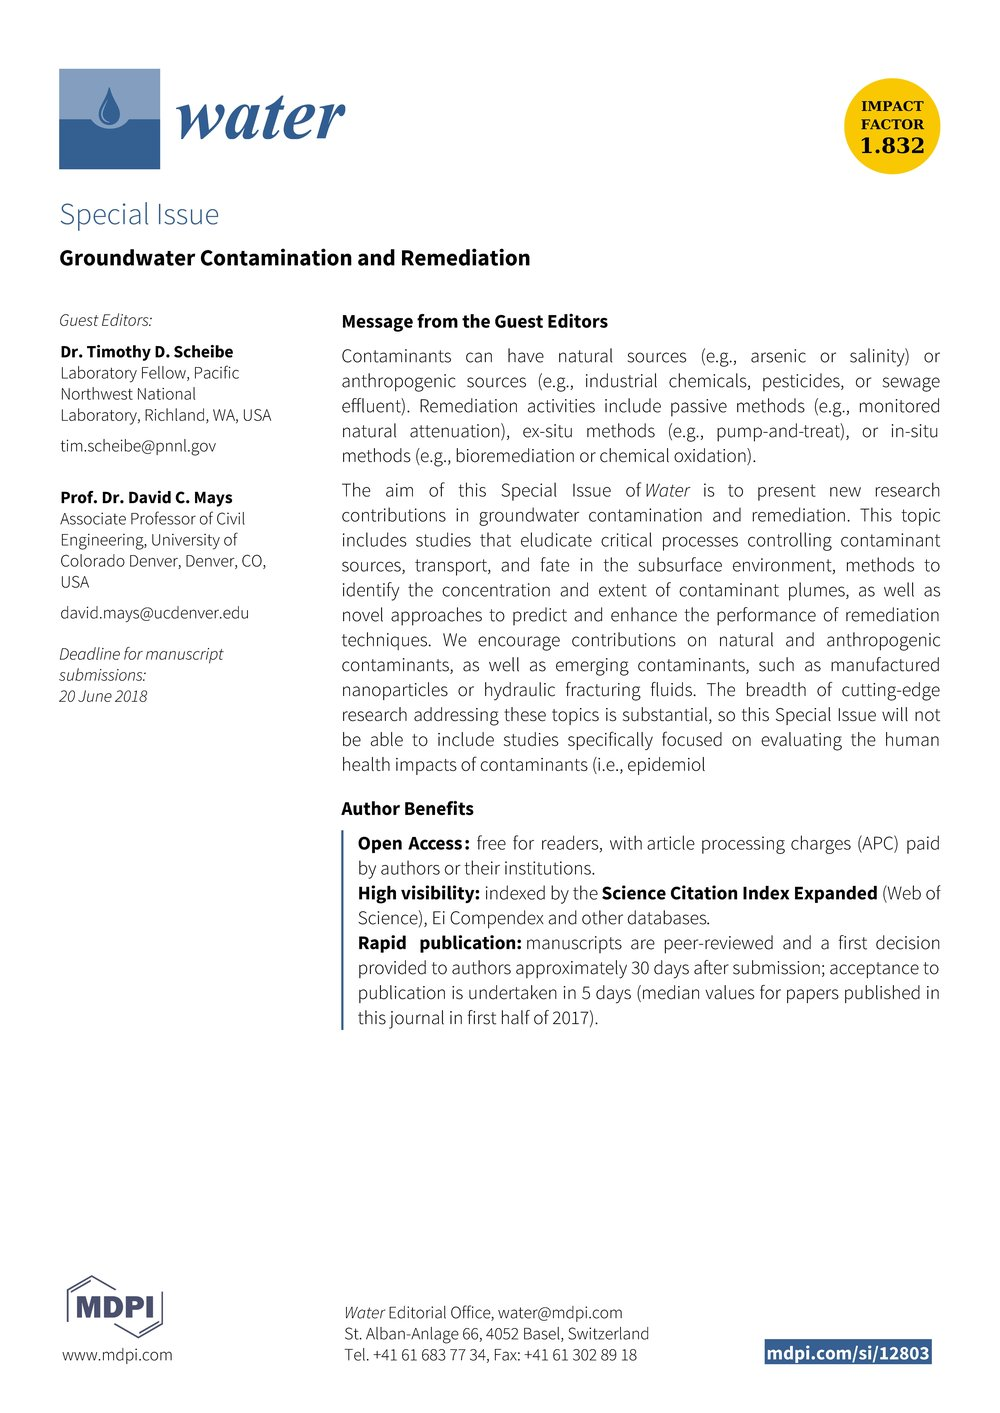 Groundwater_Contamination_Remediation-flyer (1).jpg